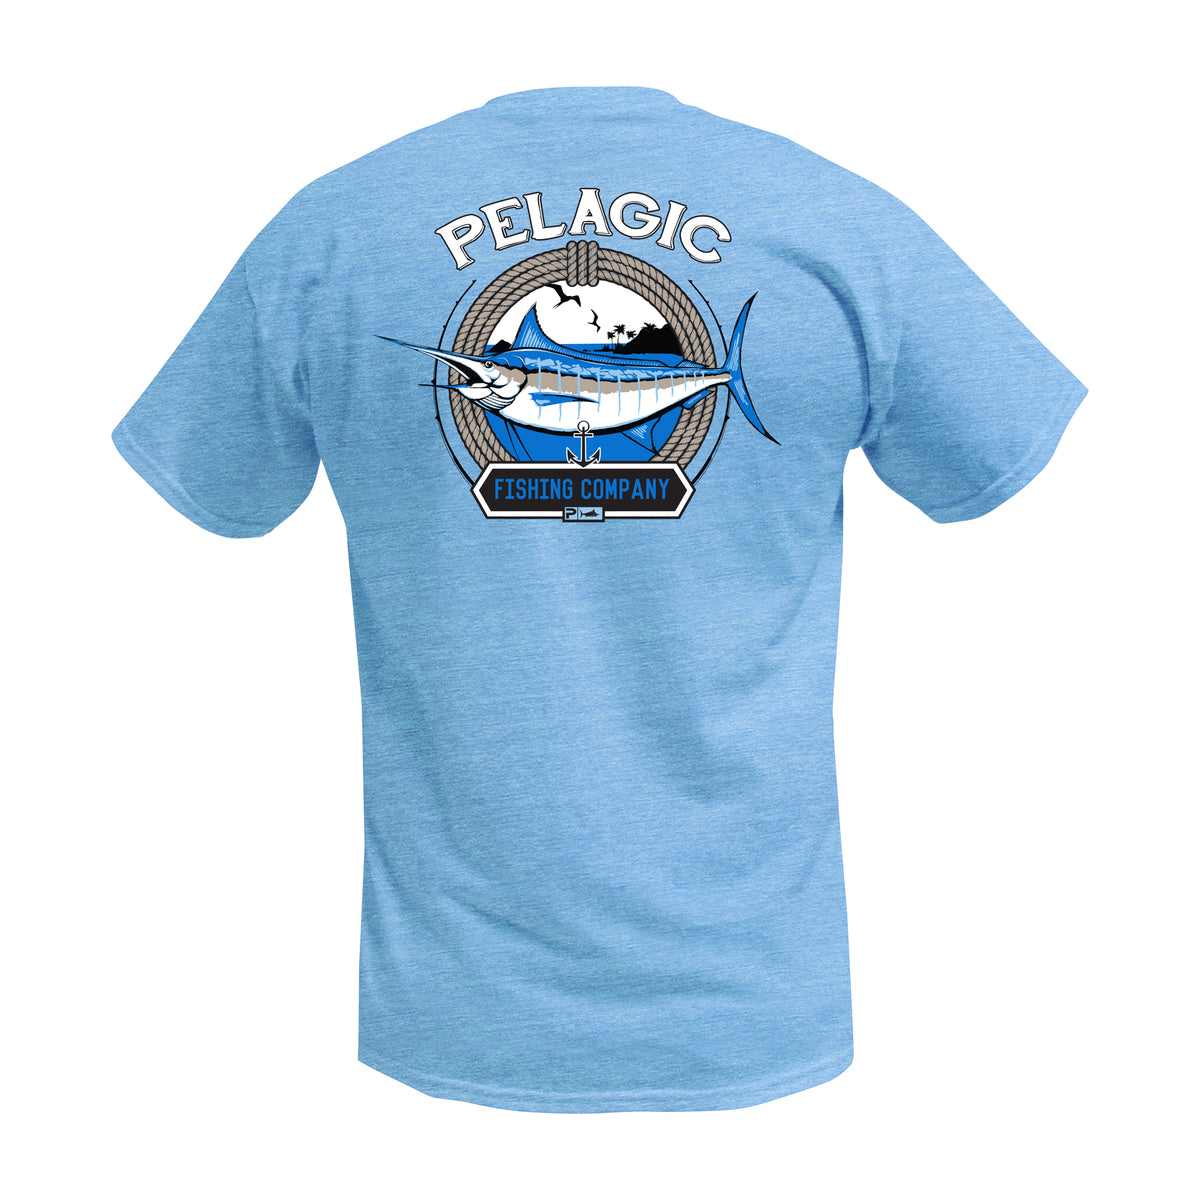 Marlin Company Fishing T-shirt Big Image - 1